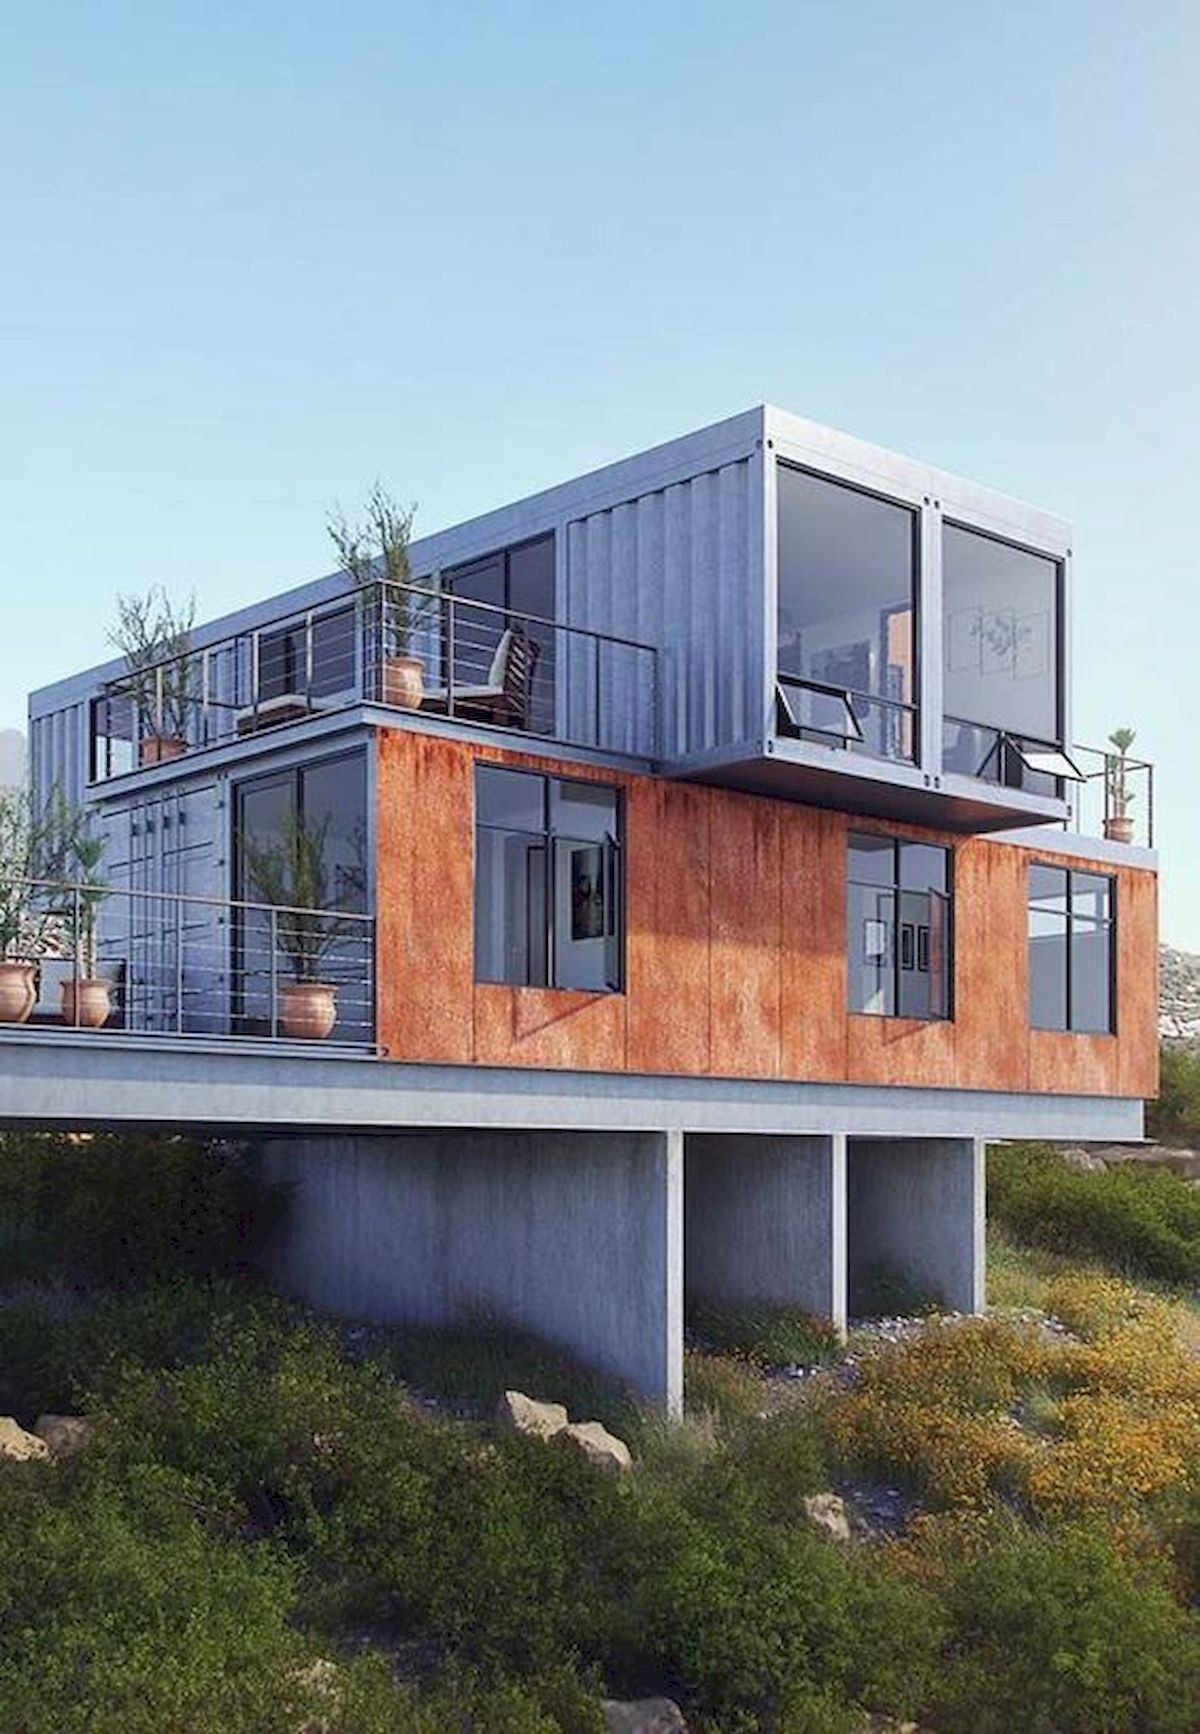 Container bar cargo container homes shipping container home designs container house plans